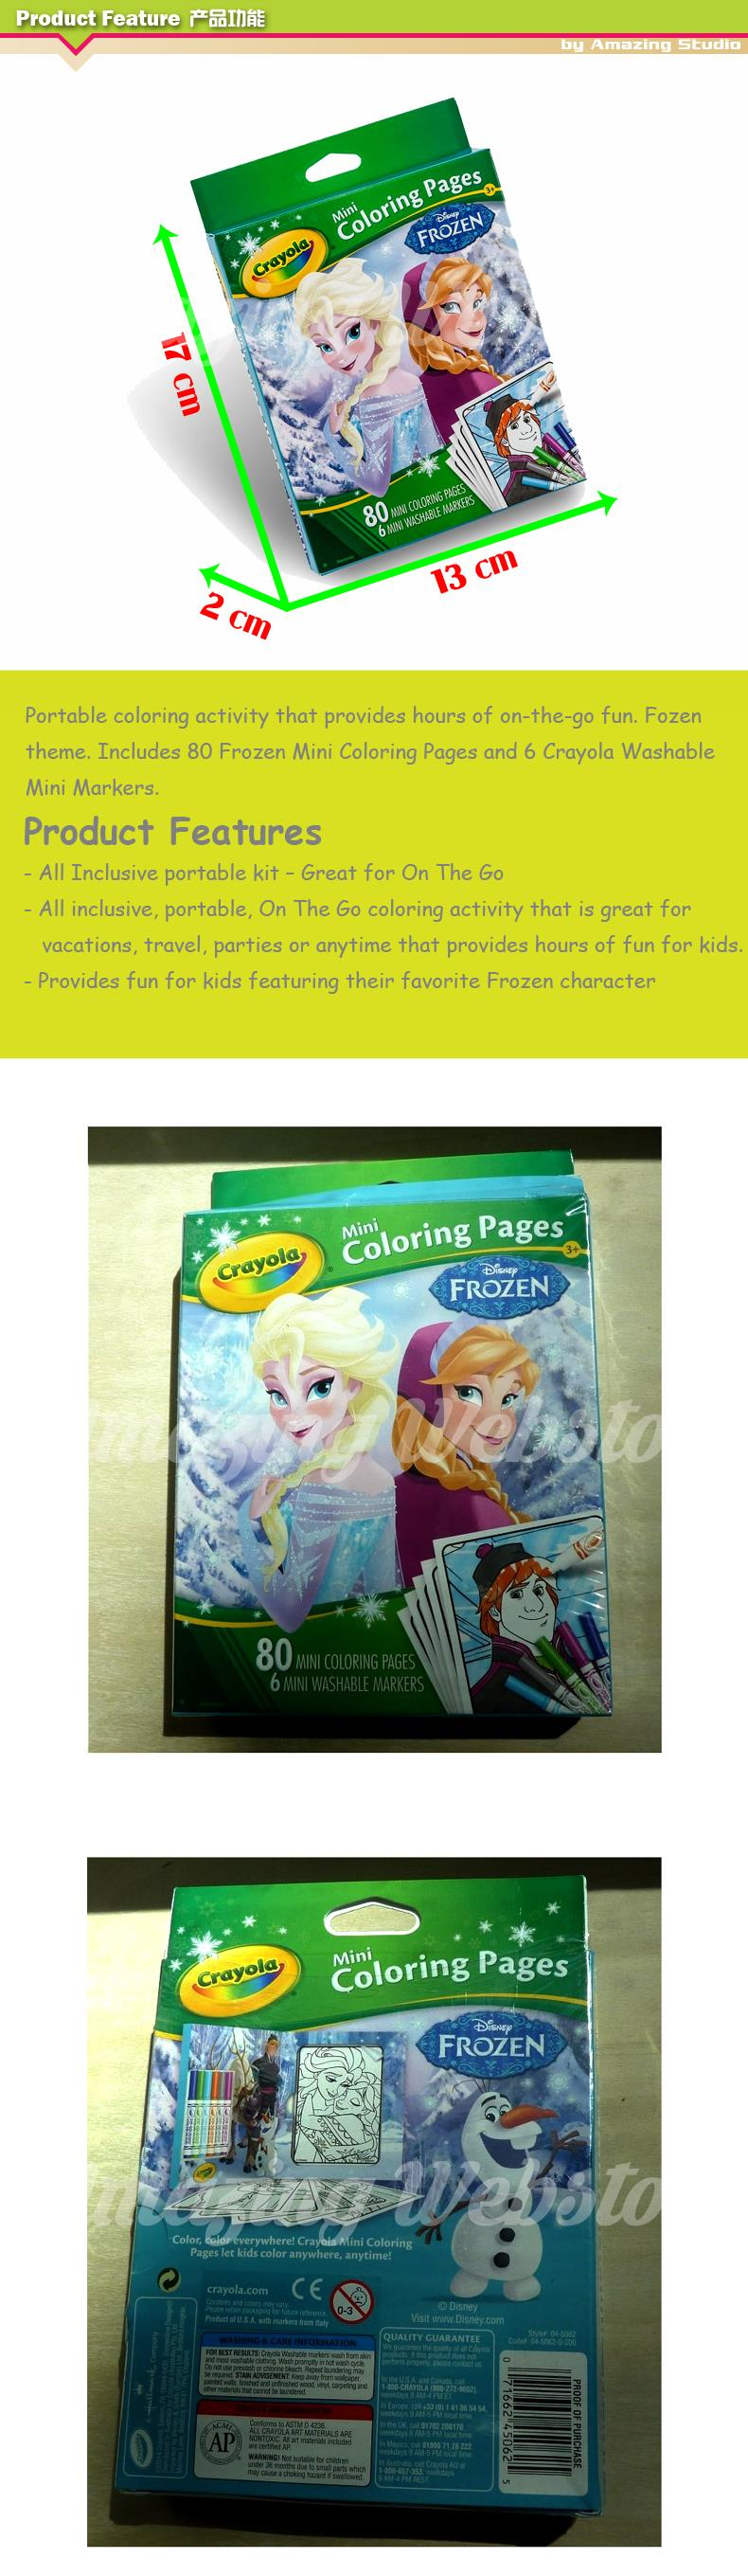 Crayola Mini Coloring Pages Series - Disney Frozen